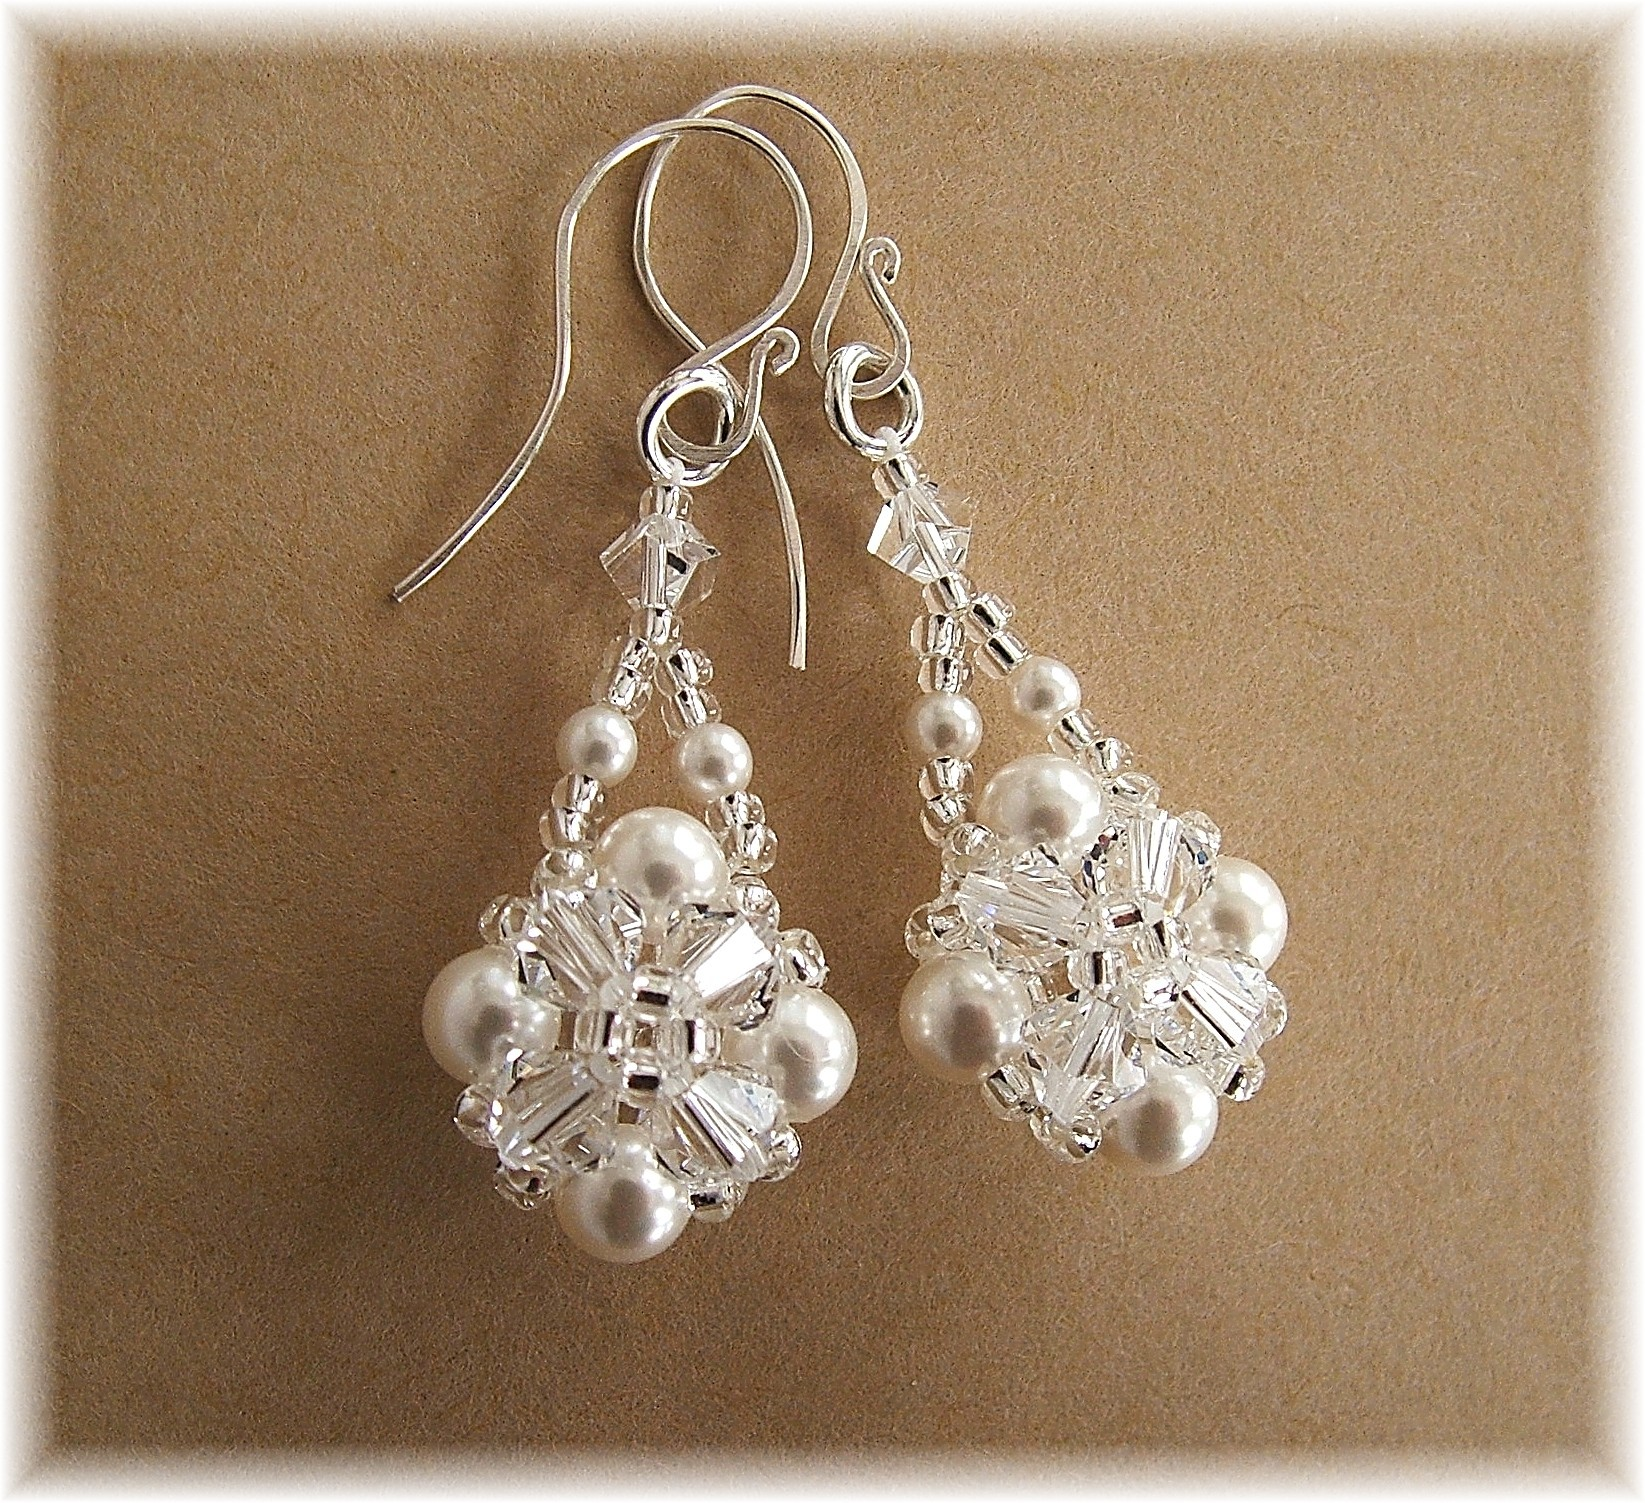 Jewelry, white, Earrings, Bride, Accessories, Gown, Wedding, Custom, Bridesmaid, Bridal, Crystal, Pearl, Beaded, Cluster